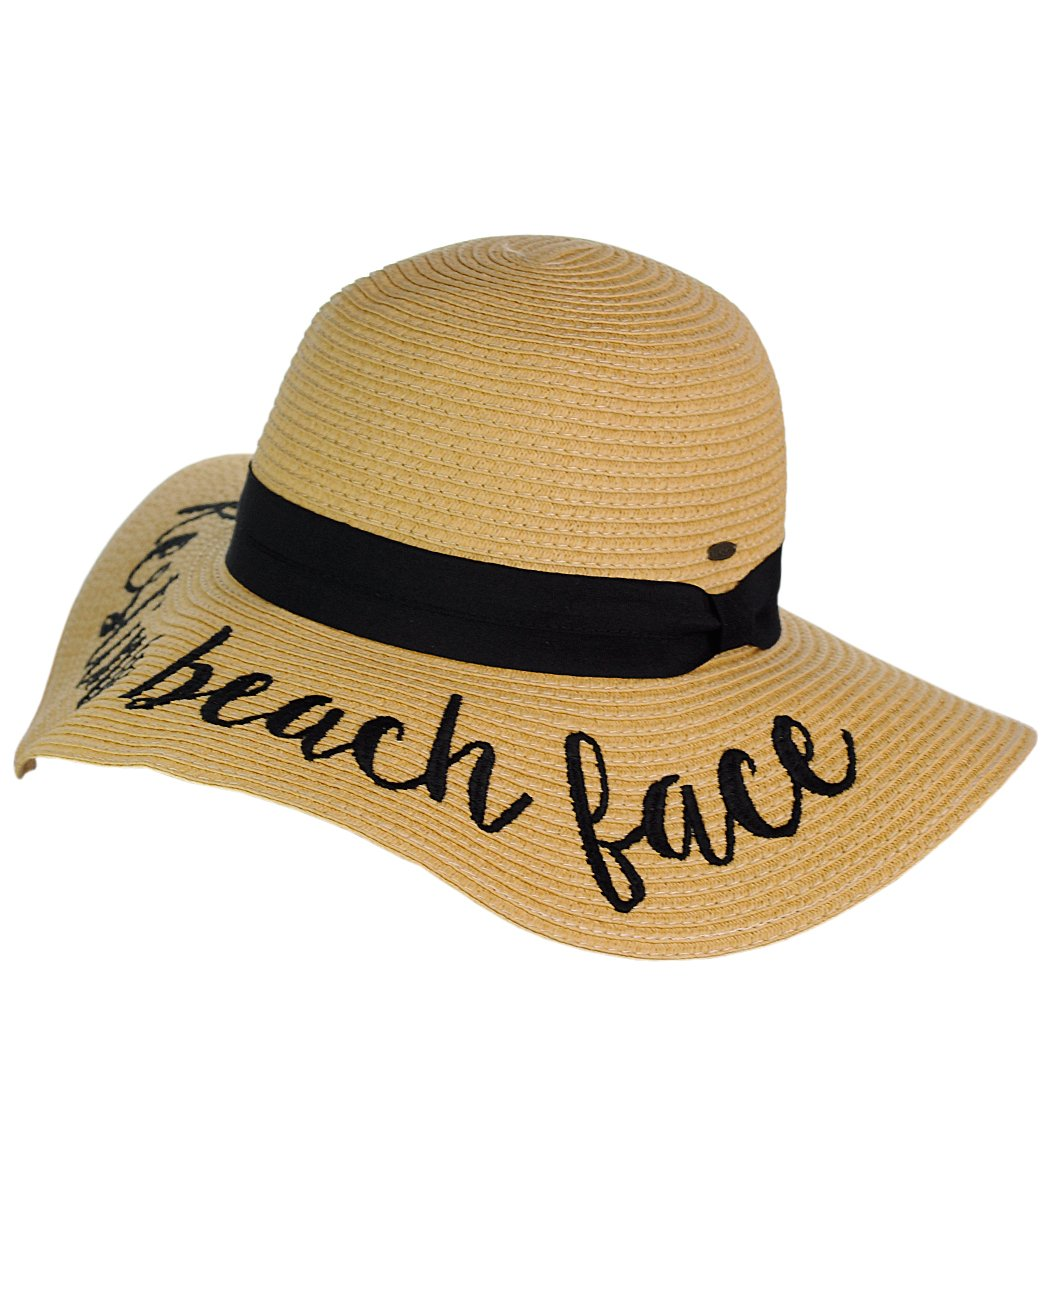 f2d9527816cfb C.C Women s Paper Weaved Crushable Beach Embroidered Quote Floppy Brim Sun  Hat